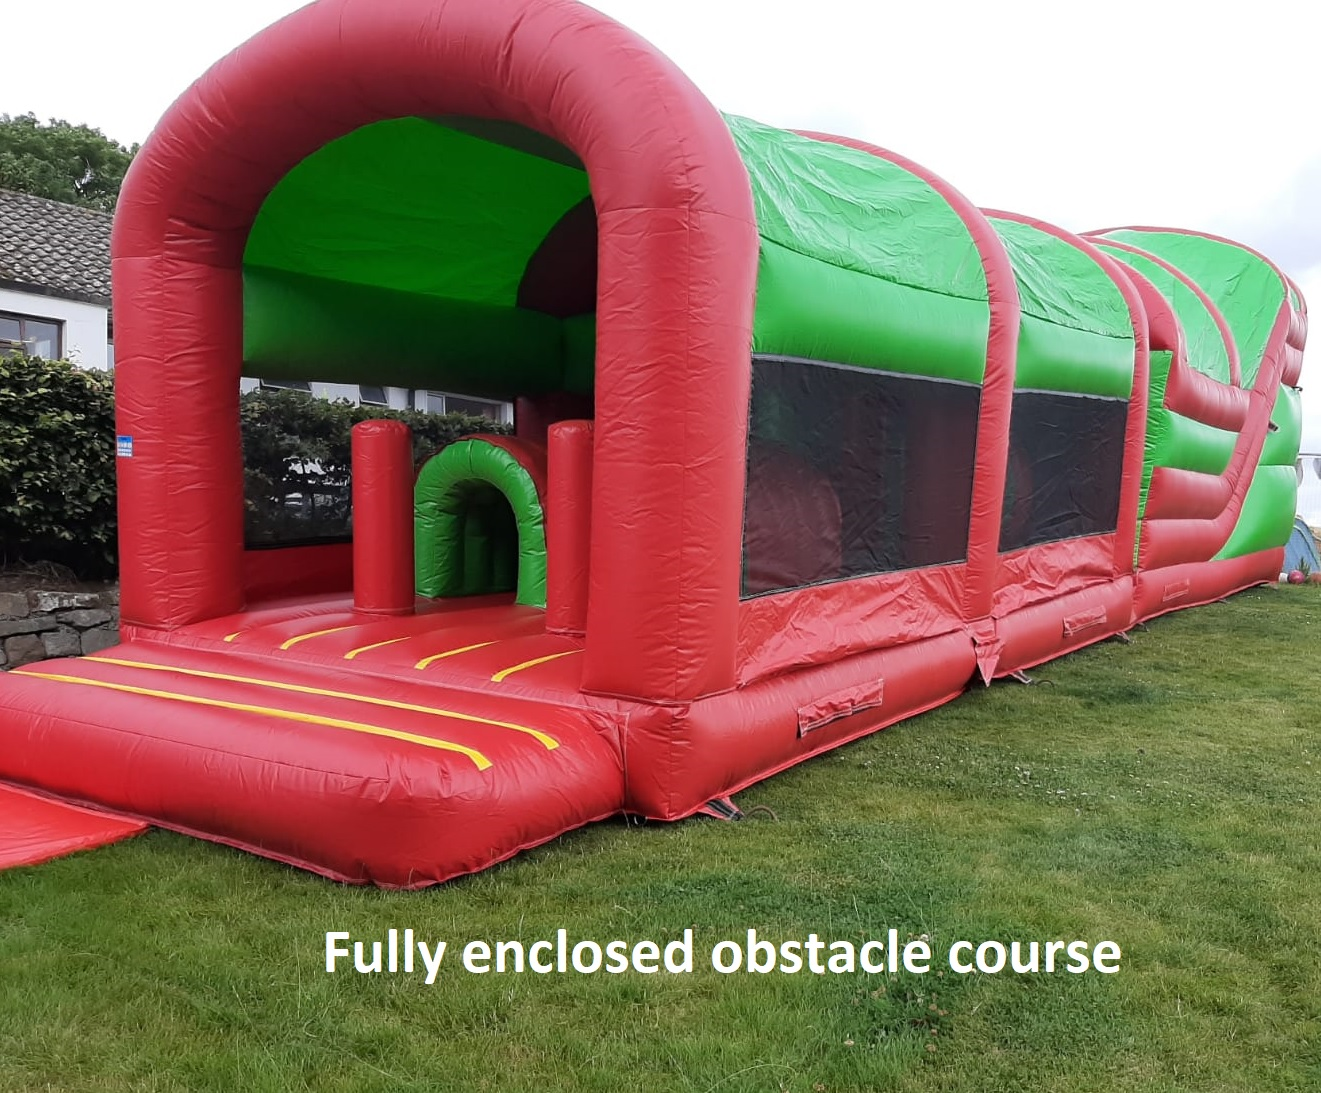 Fully enclosed obstacle